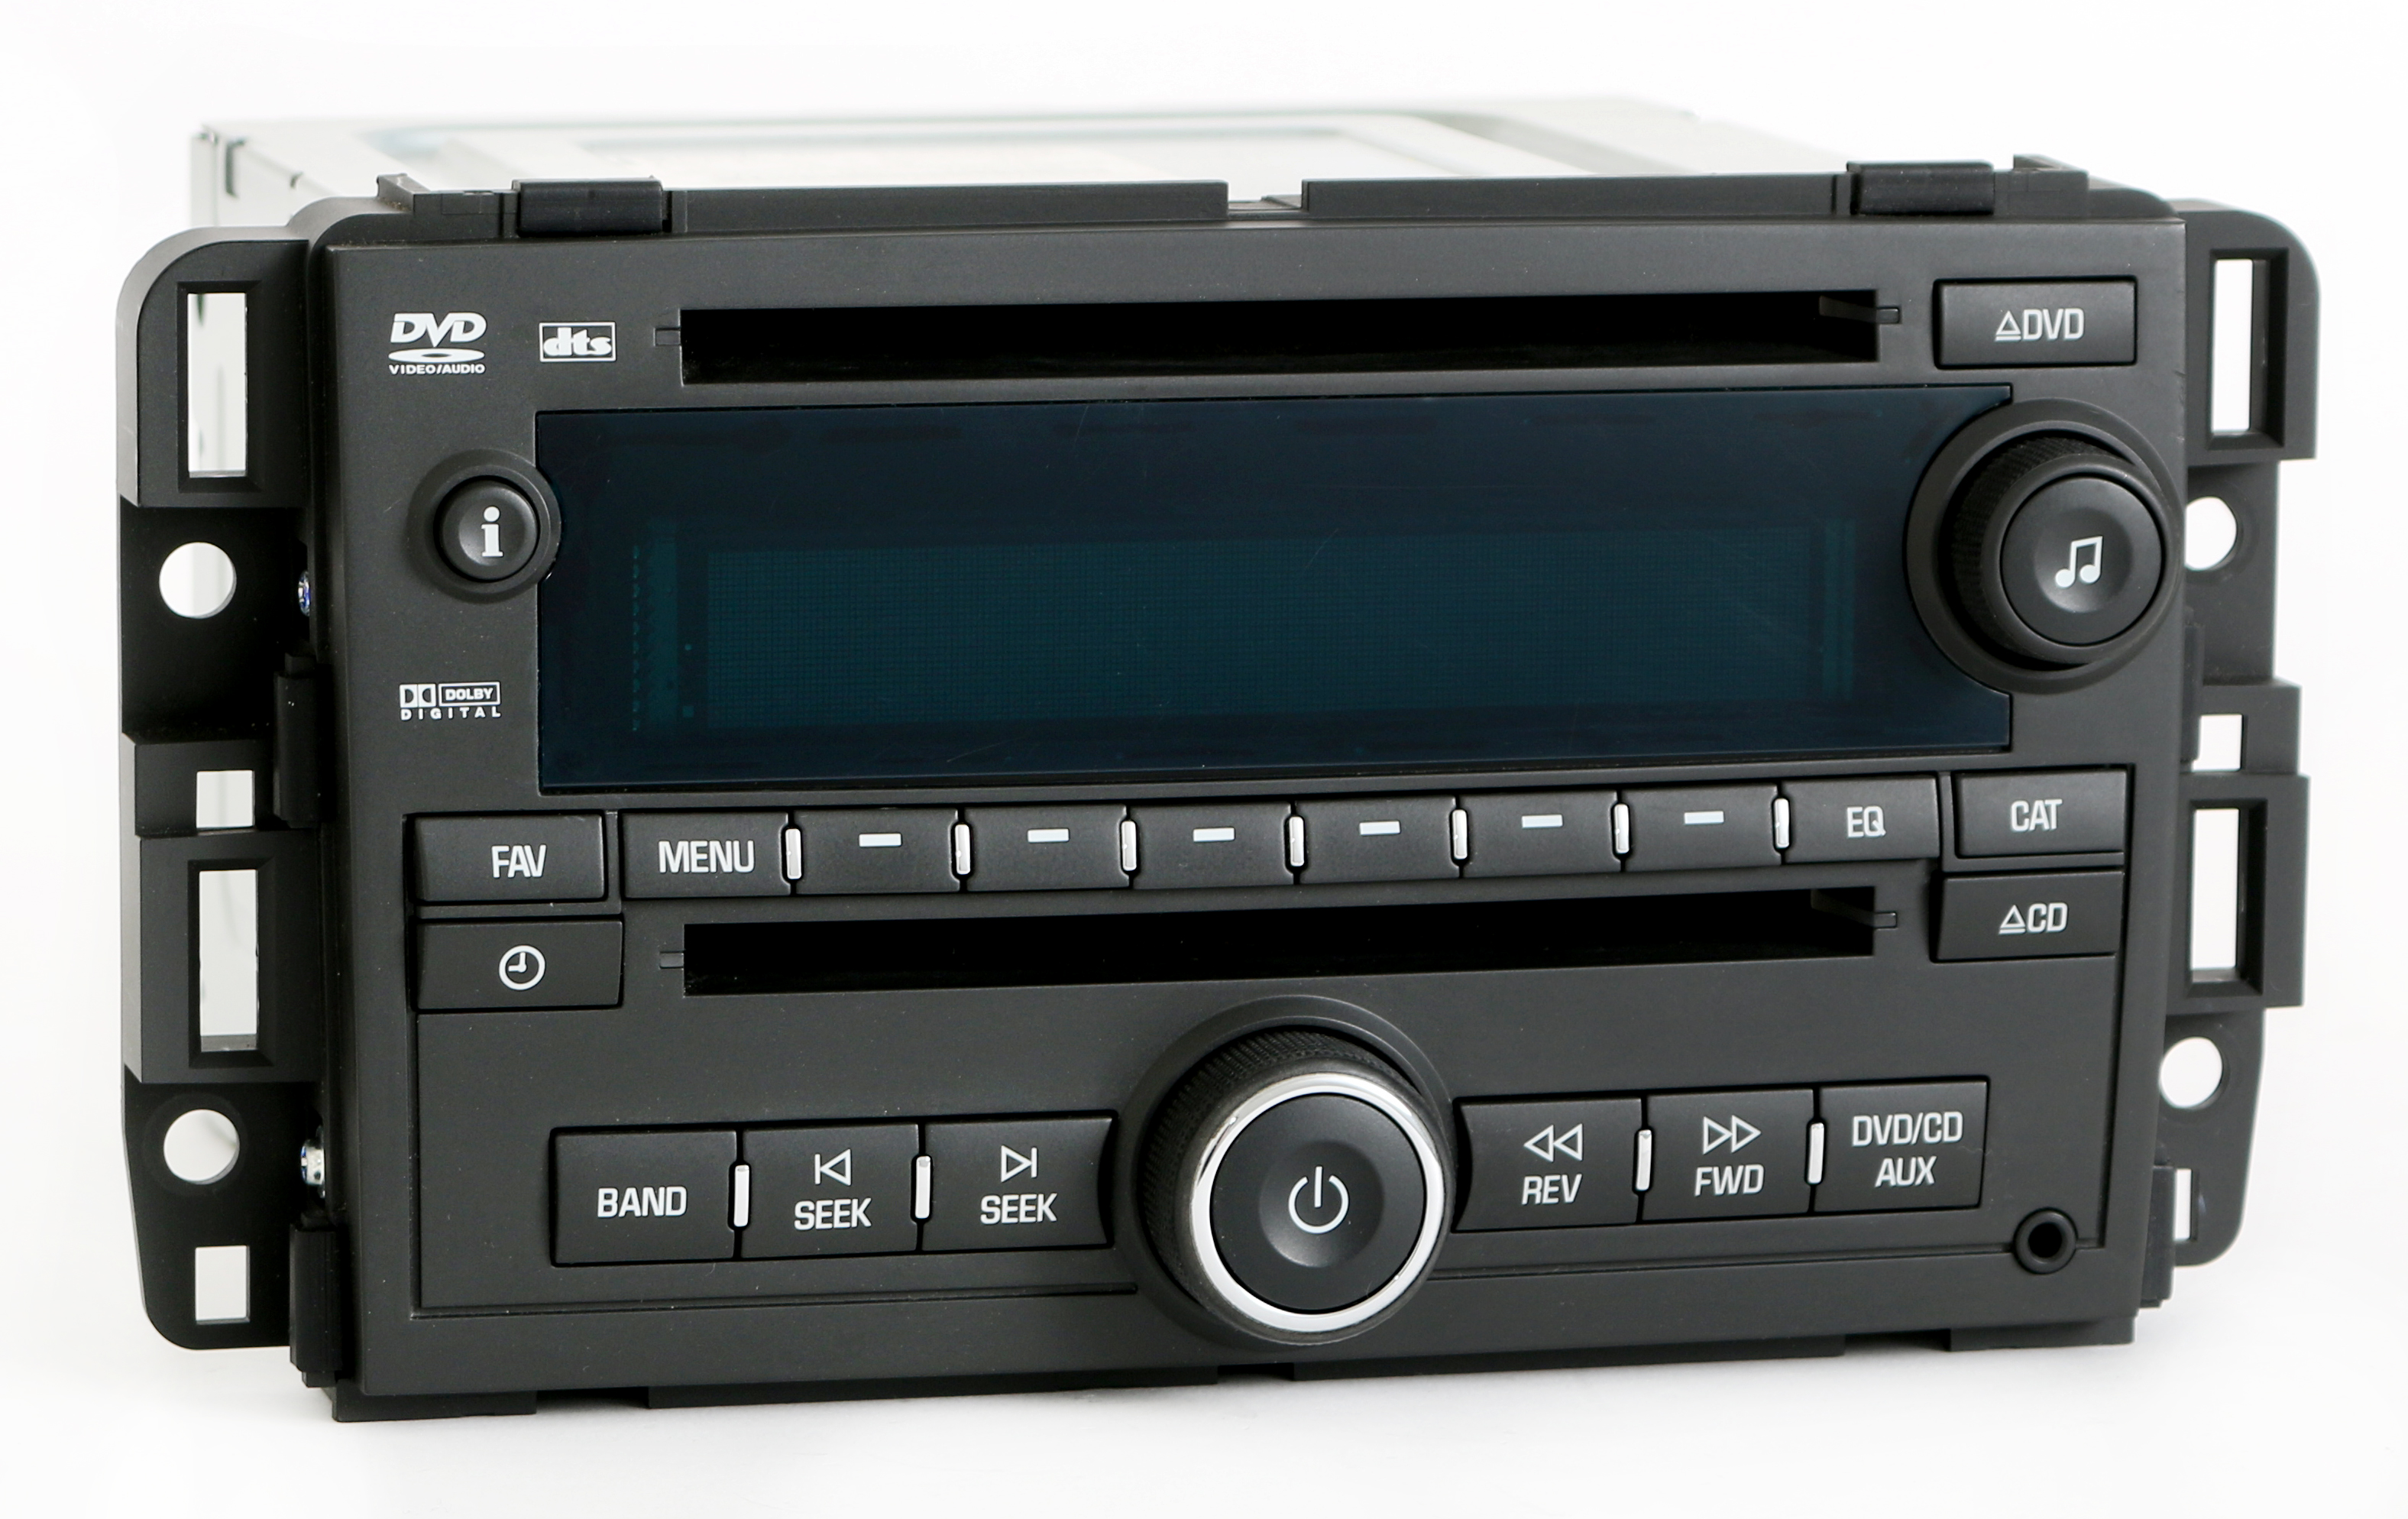 chevy gmc truck radio am fm mp cd dvd player part chevy gmc truck 2007 2008 radio am fm mp3 cd dvd player part number 25840249 uva 1 factory radio